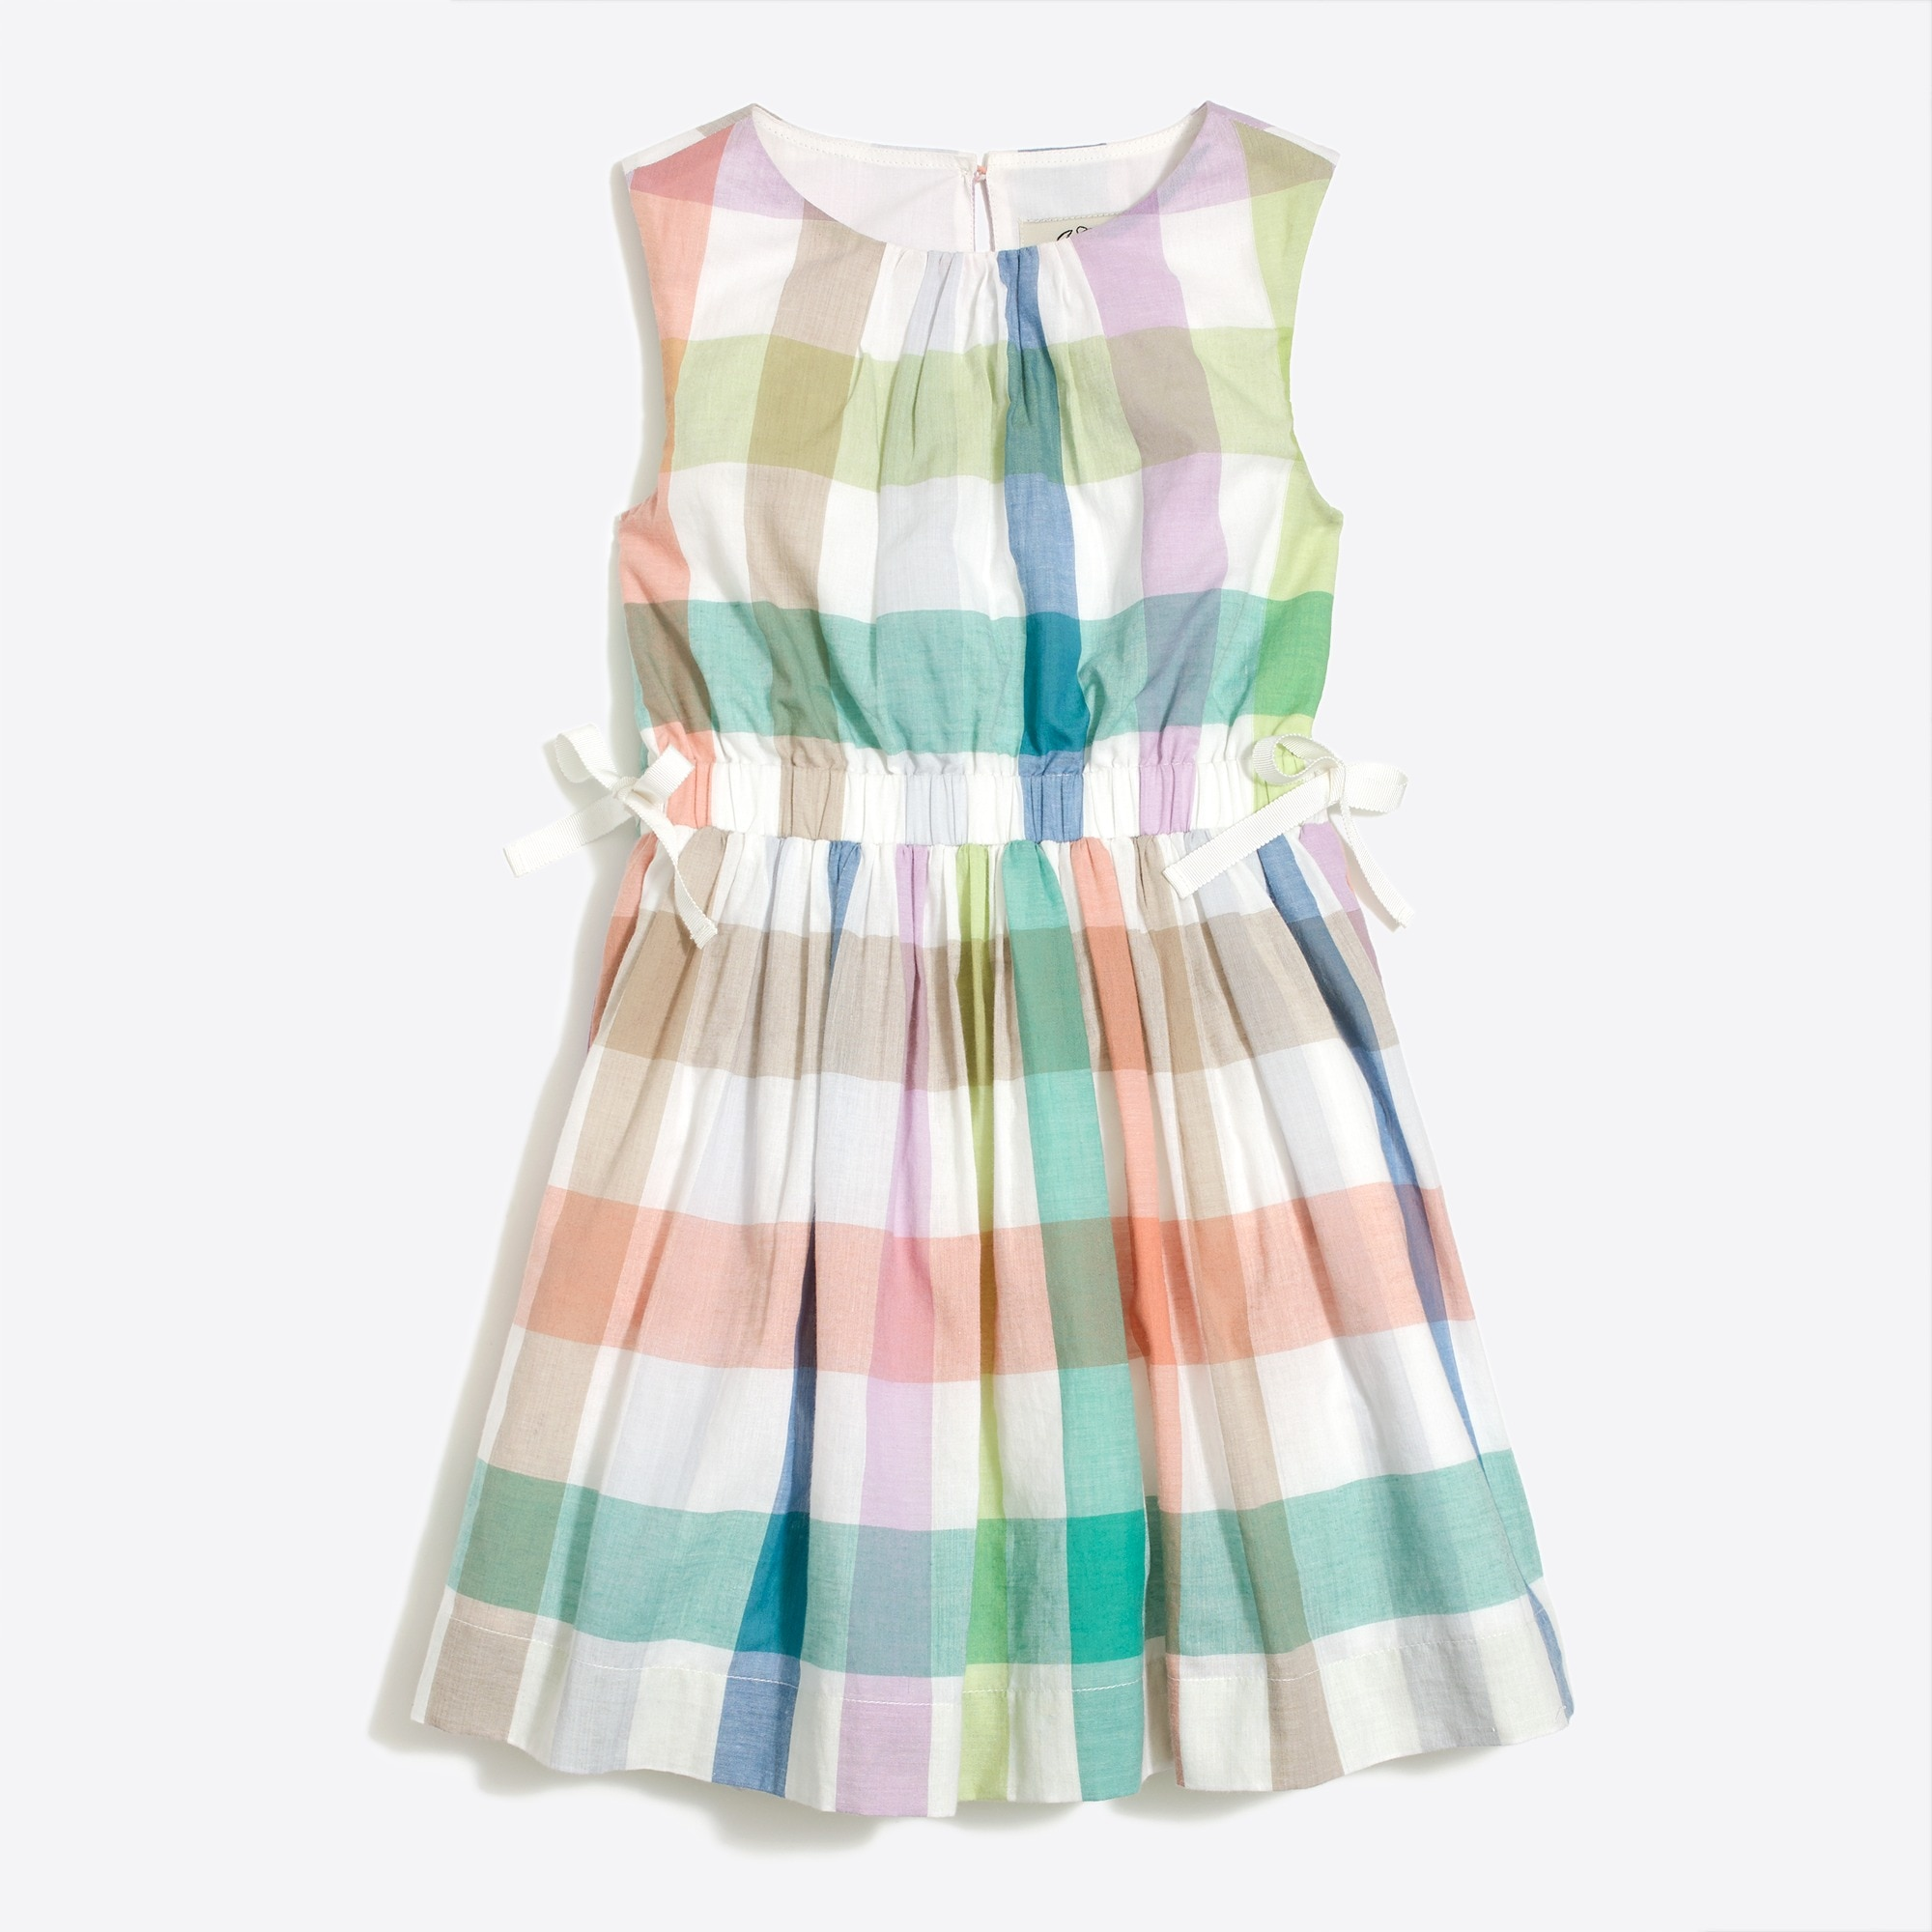 girls' sleeveless dress in rainbow gingham : factorygirls dresses